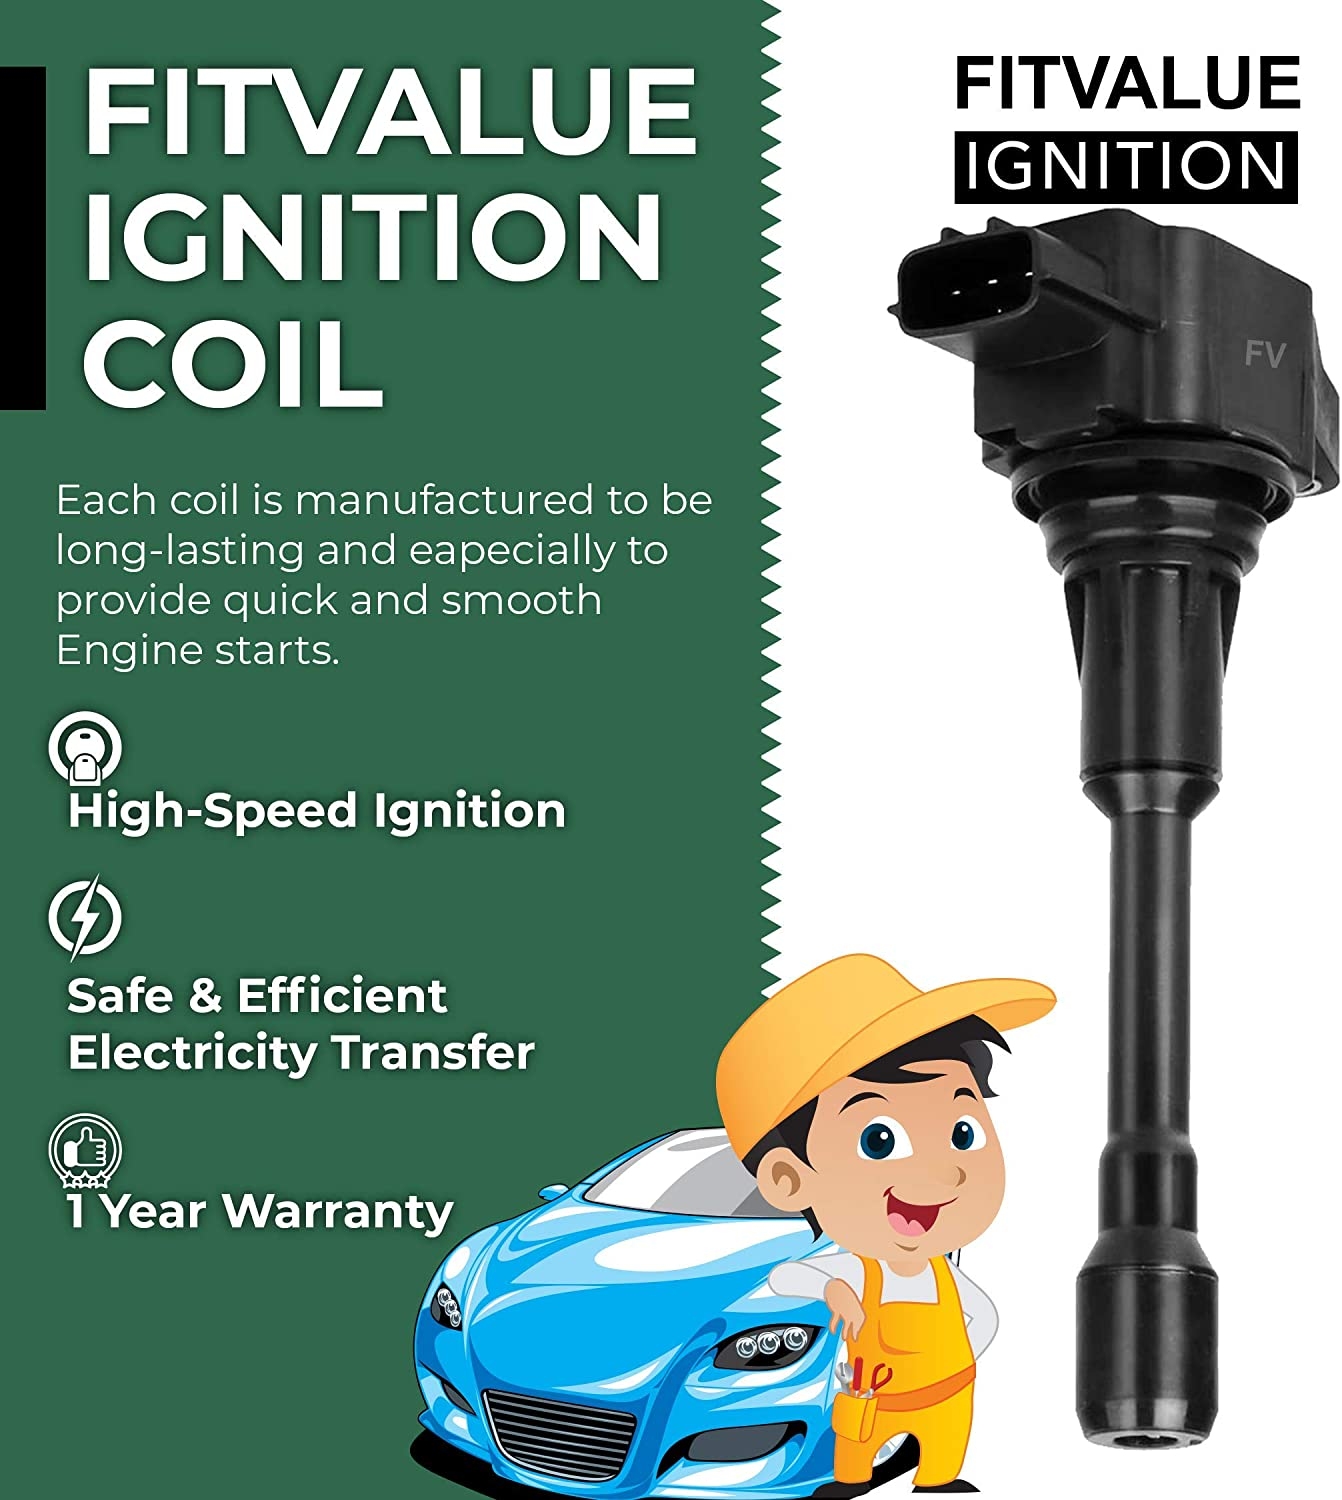 Premium Ignition Coil Pack of 4 Easy Fitting Parts for Altima Cube Sentra Rogue Select NV200 Pathfinder 1.8L 2.0L 2.5L//Infiniti FX50 M56 QX60 2.5L 5.0L 5.6L C1696 UF549 5C1753